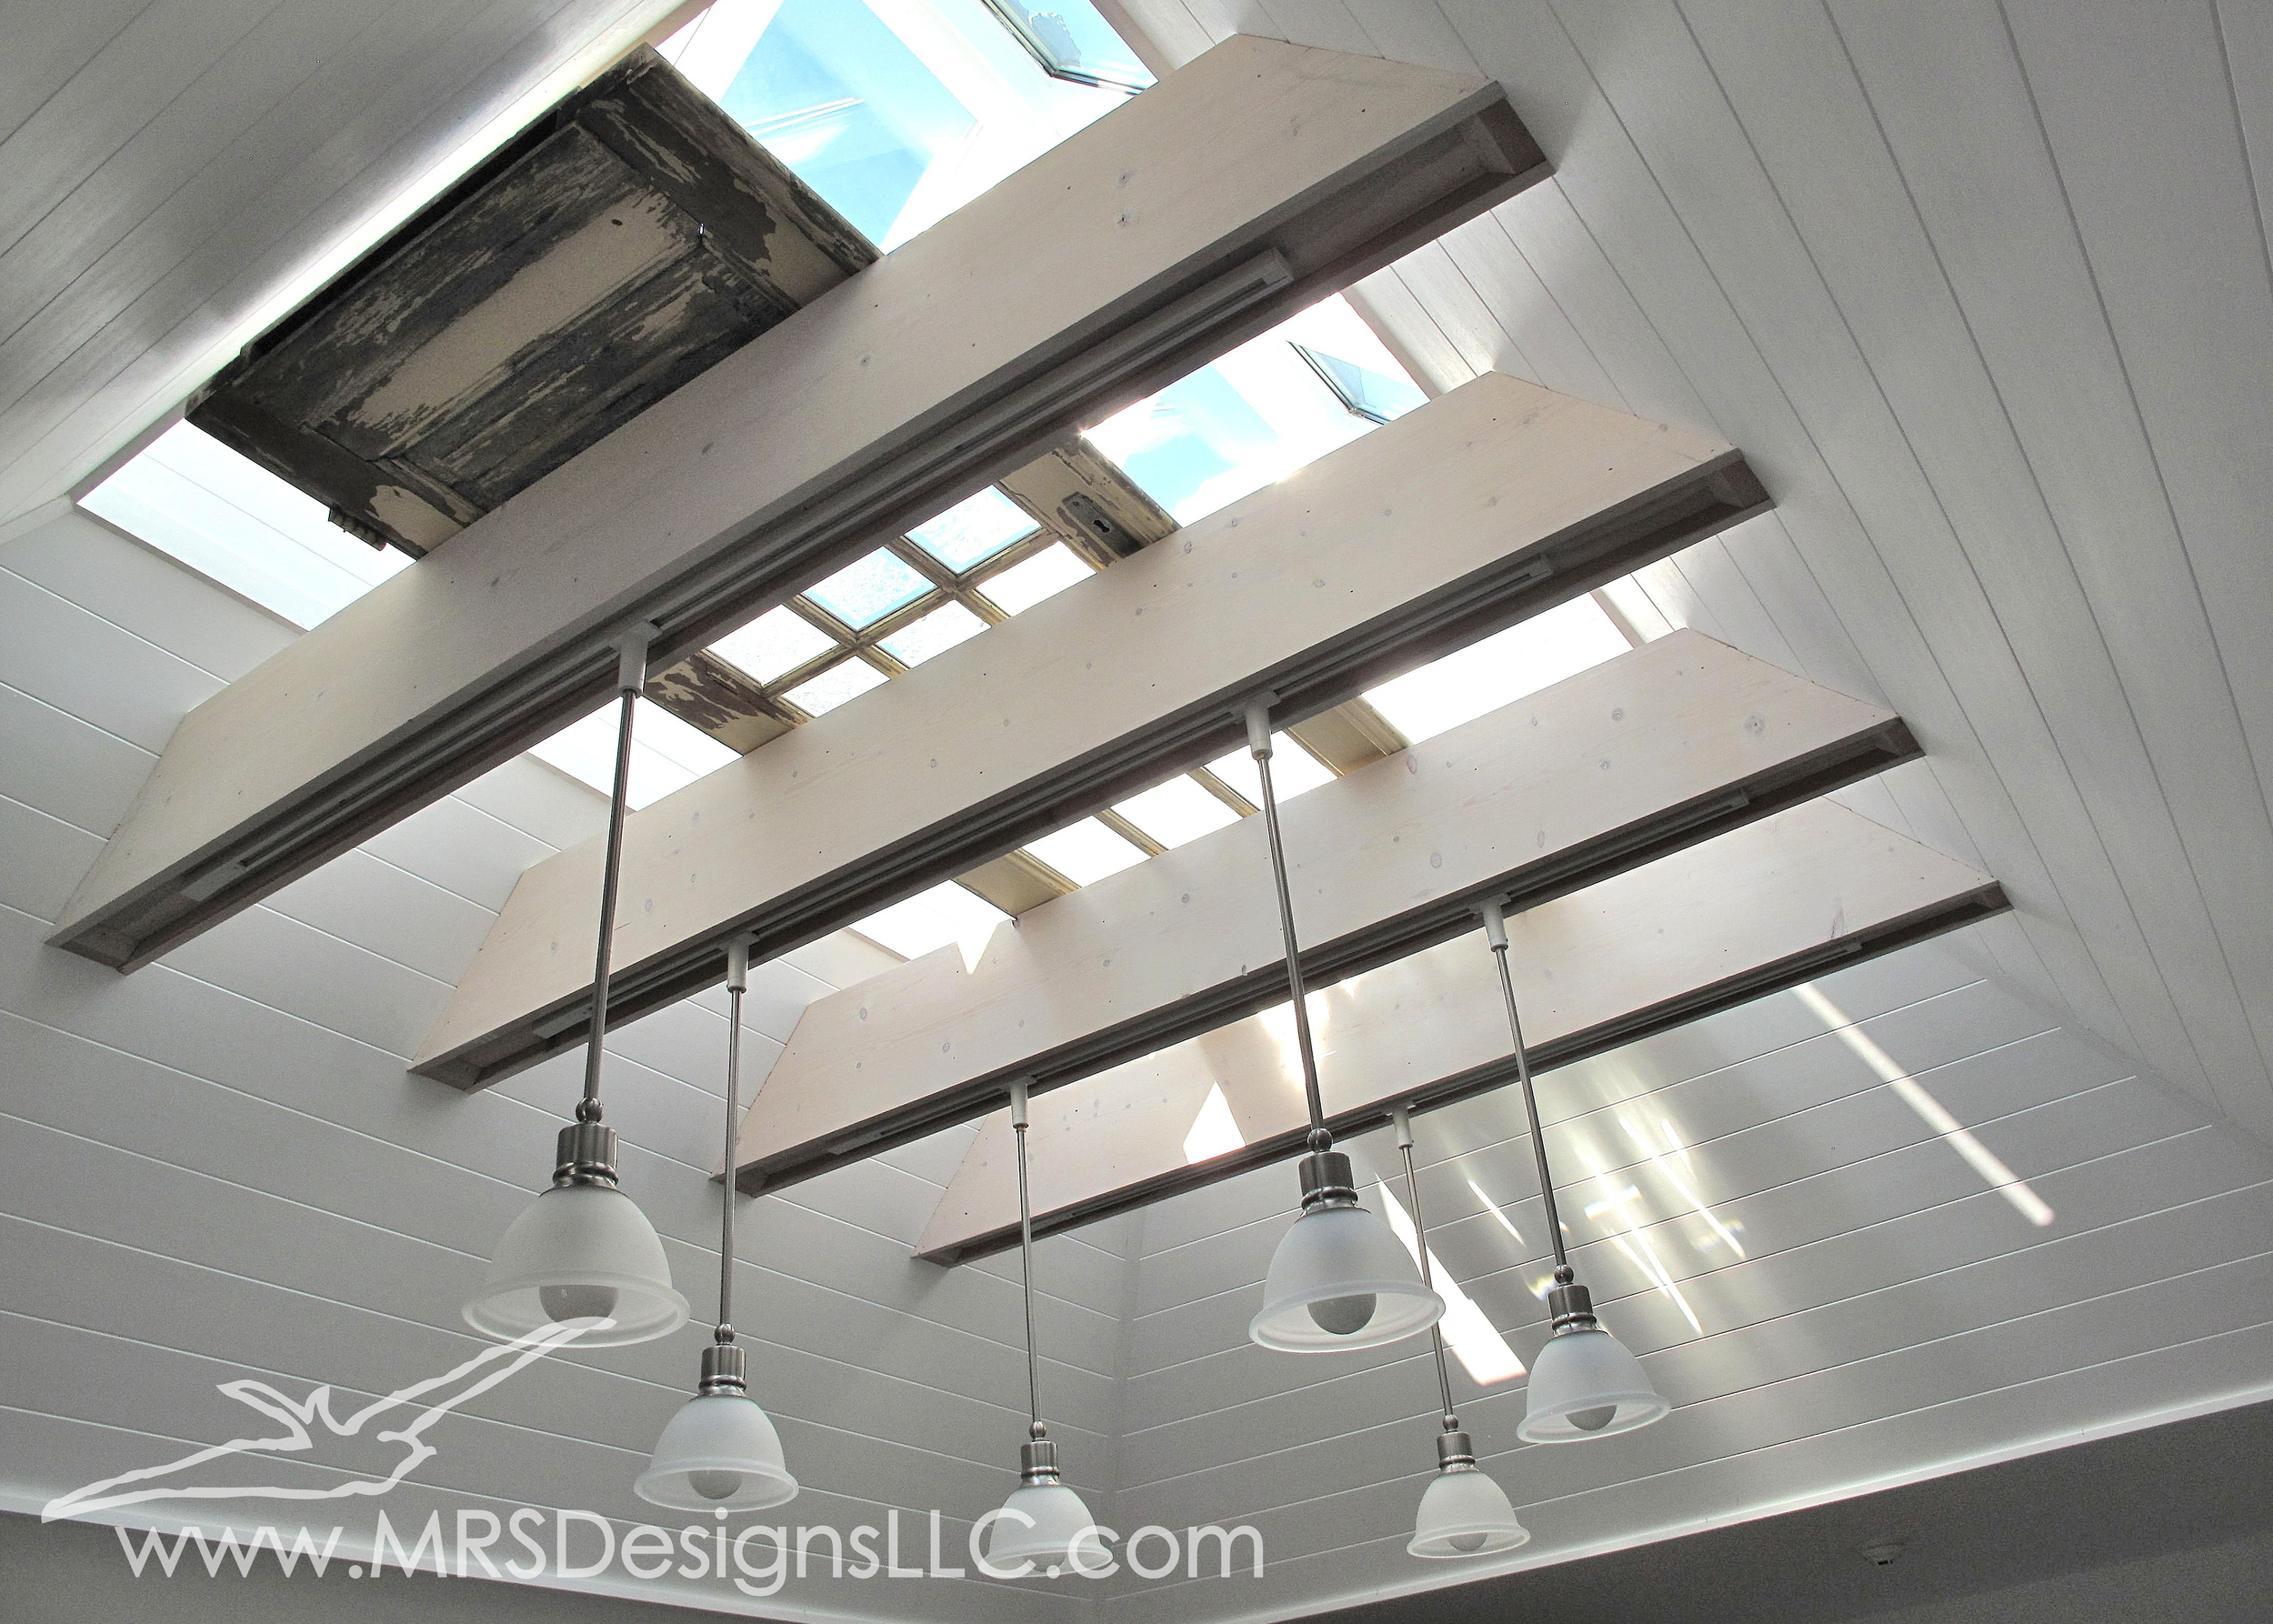 MRS Designs Blog - Using a Vintage Door within a Skylight